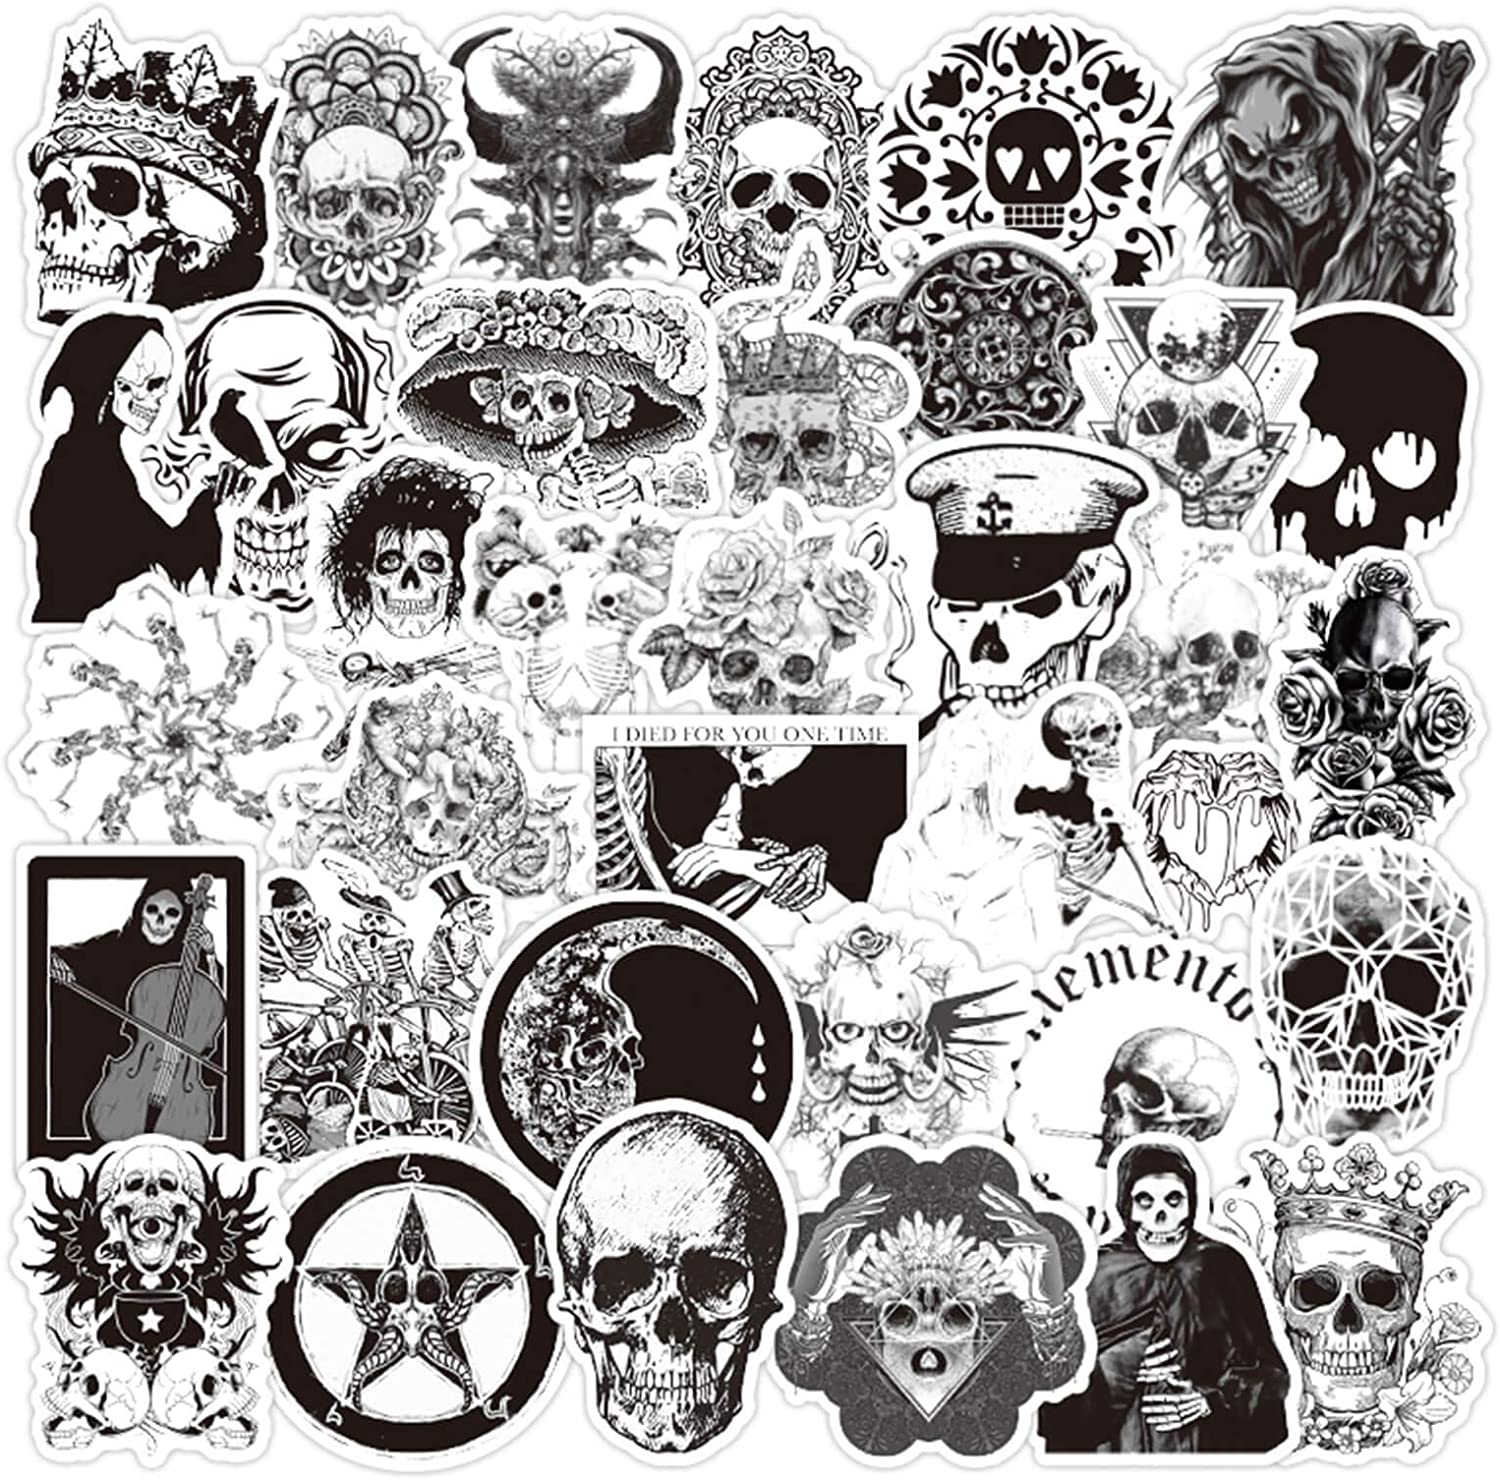 Halloween Sticker Gothic Stickers for Water Bottle Waterproof Vinyl Stickers for Laptop Phone Punk Sticker Horror Black and White Skull Sticker for Guitar Skateboard Luggage Decal Sticker (50Pcs)